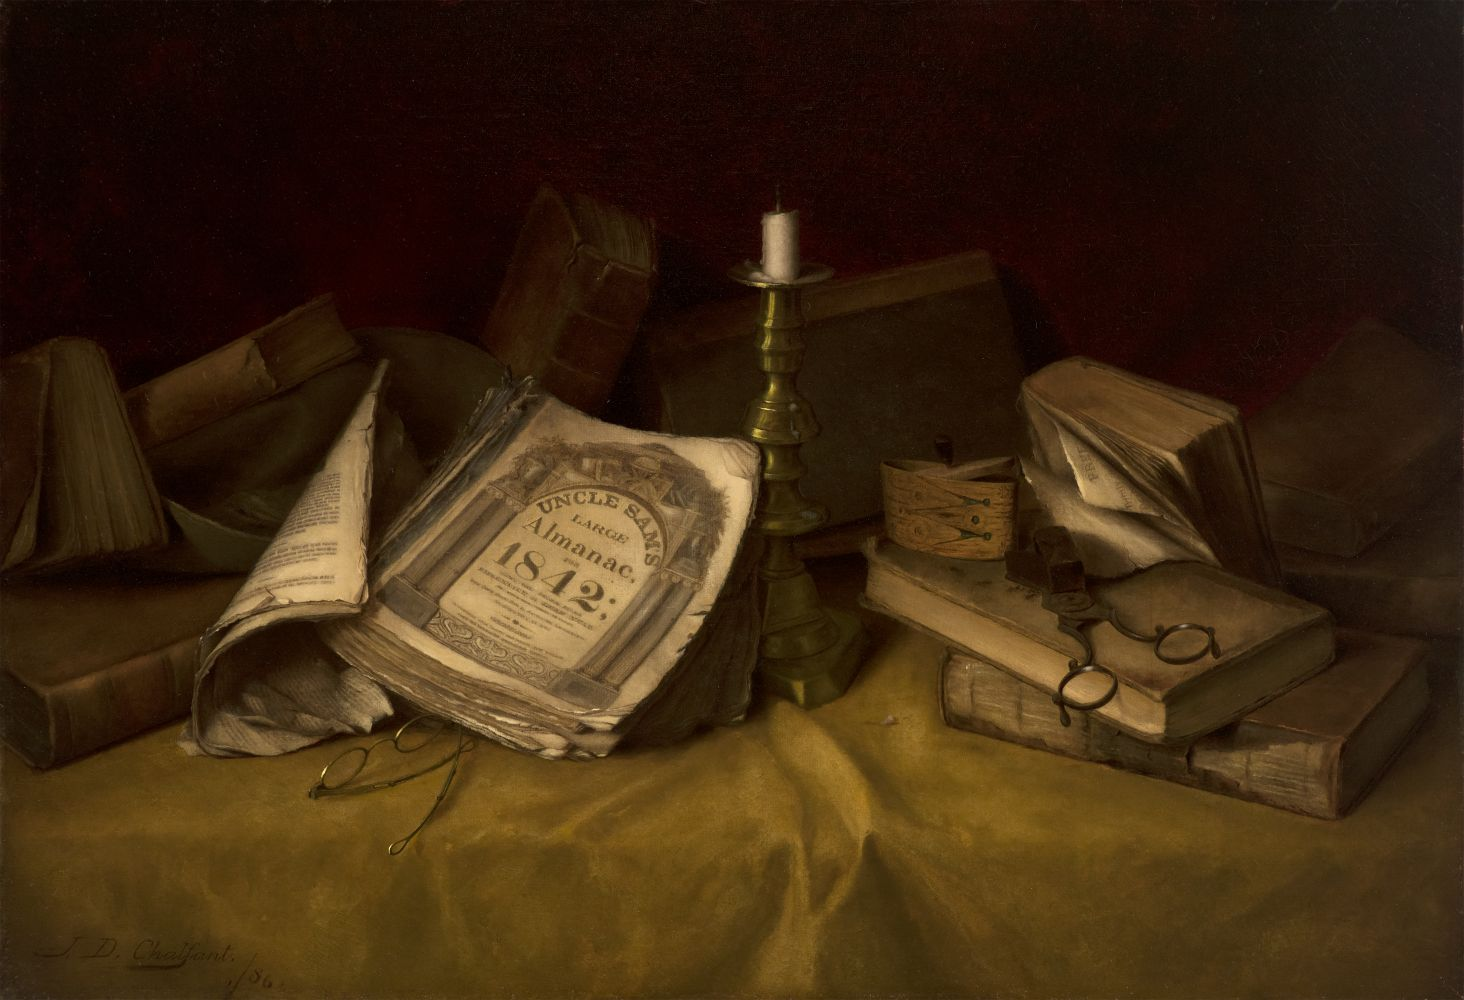 Jefferson David Chalfant (1856–1931), The Old Almanac, 1886, oil on canvas, 17 1/2 x 25 5/8 in., signed and dated lower left: J. D. Chalfant 1886